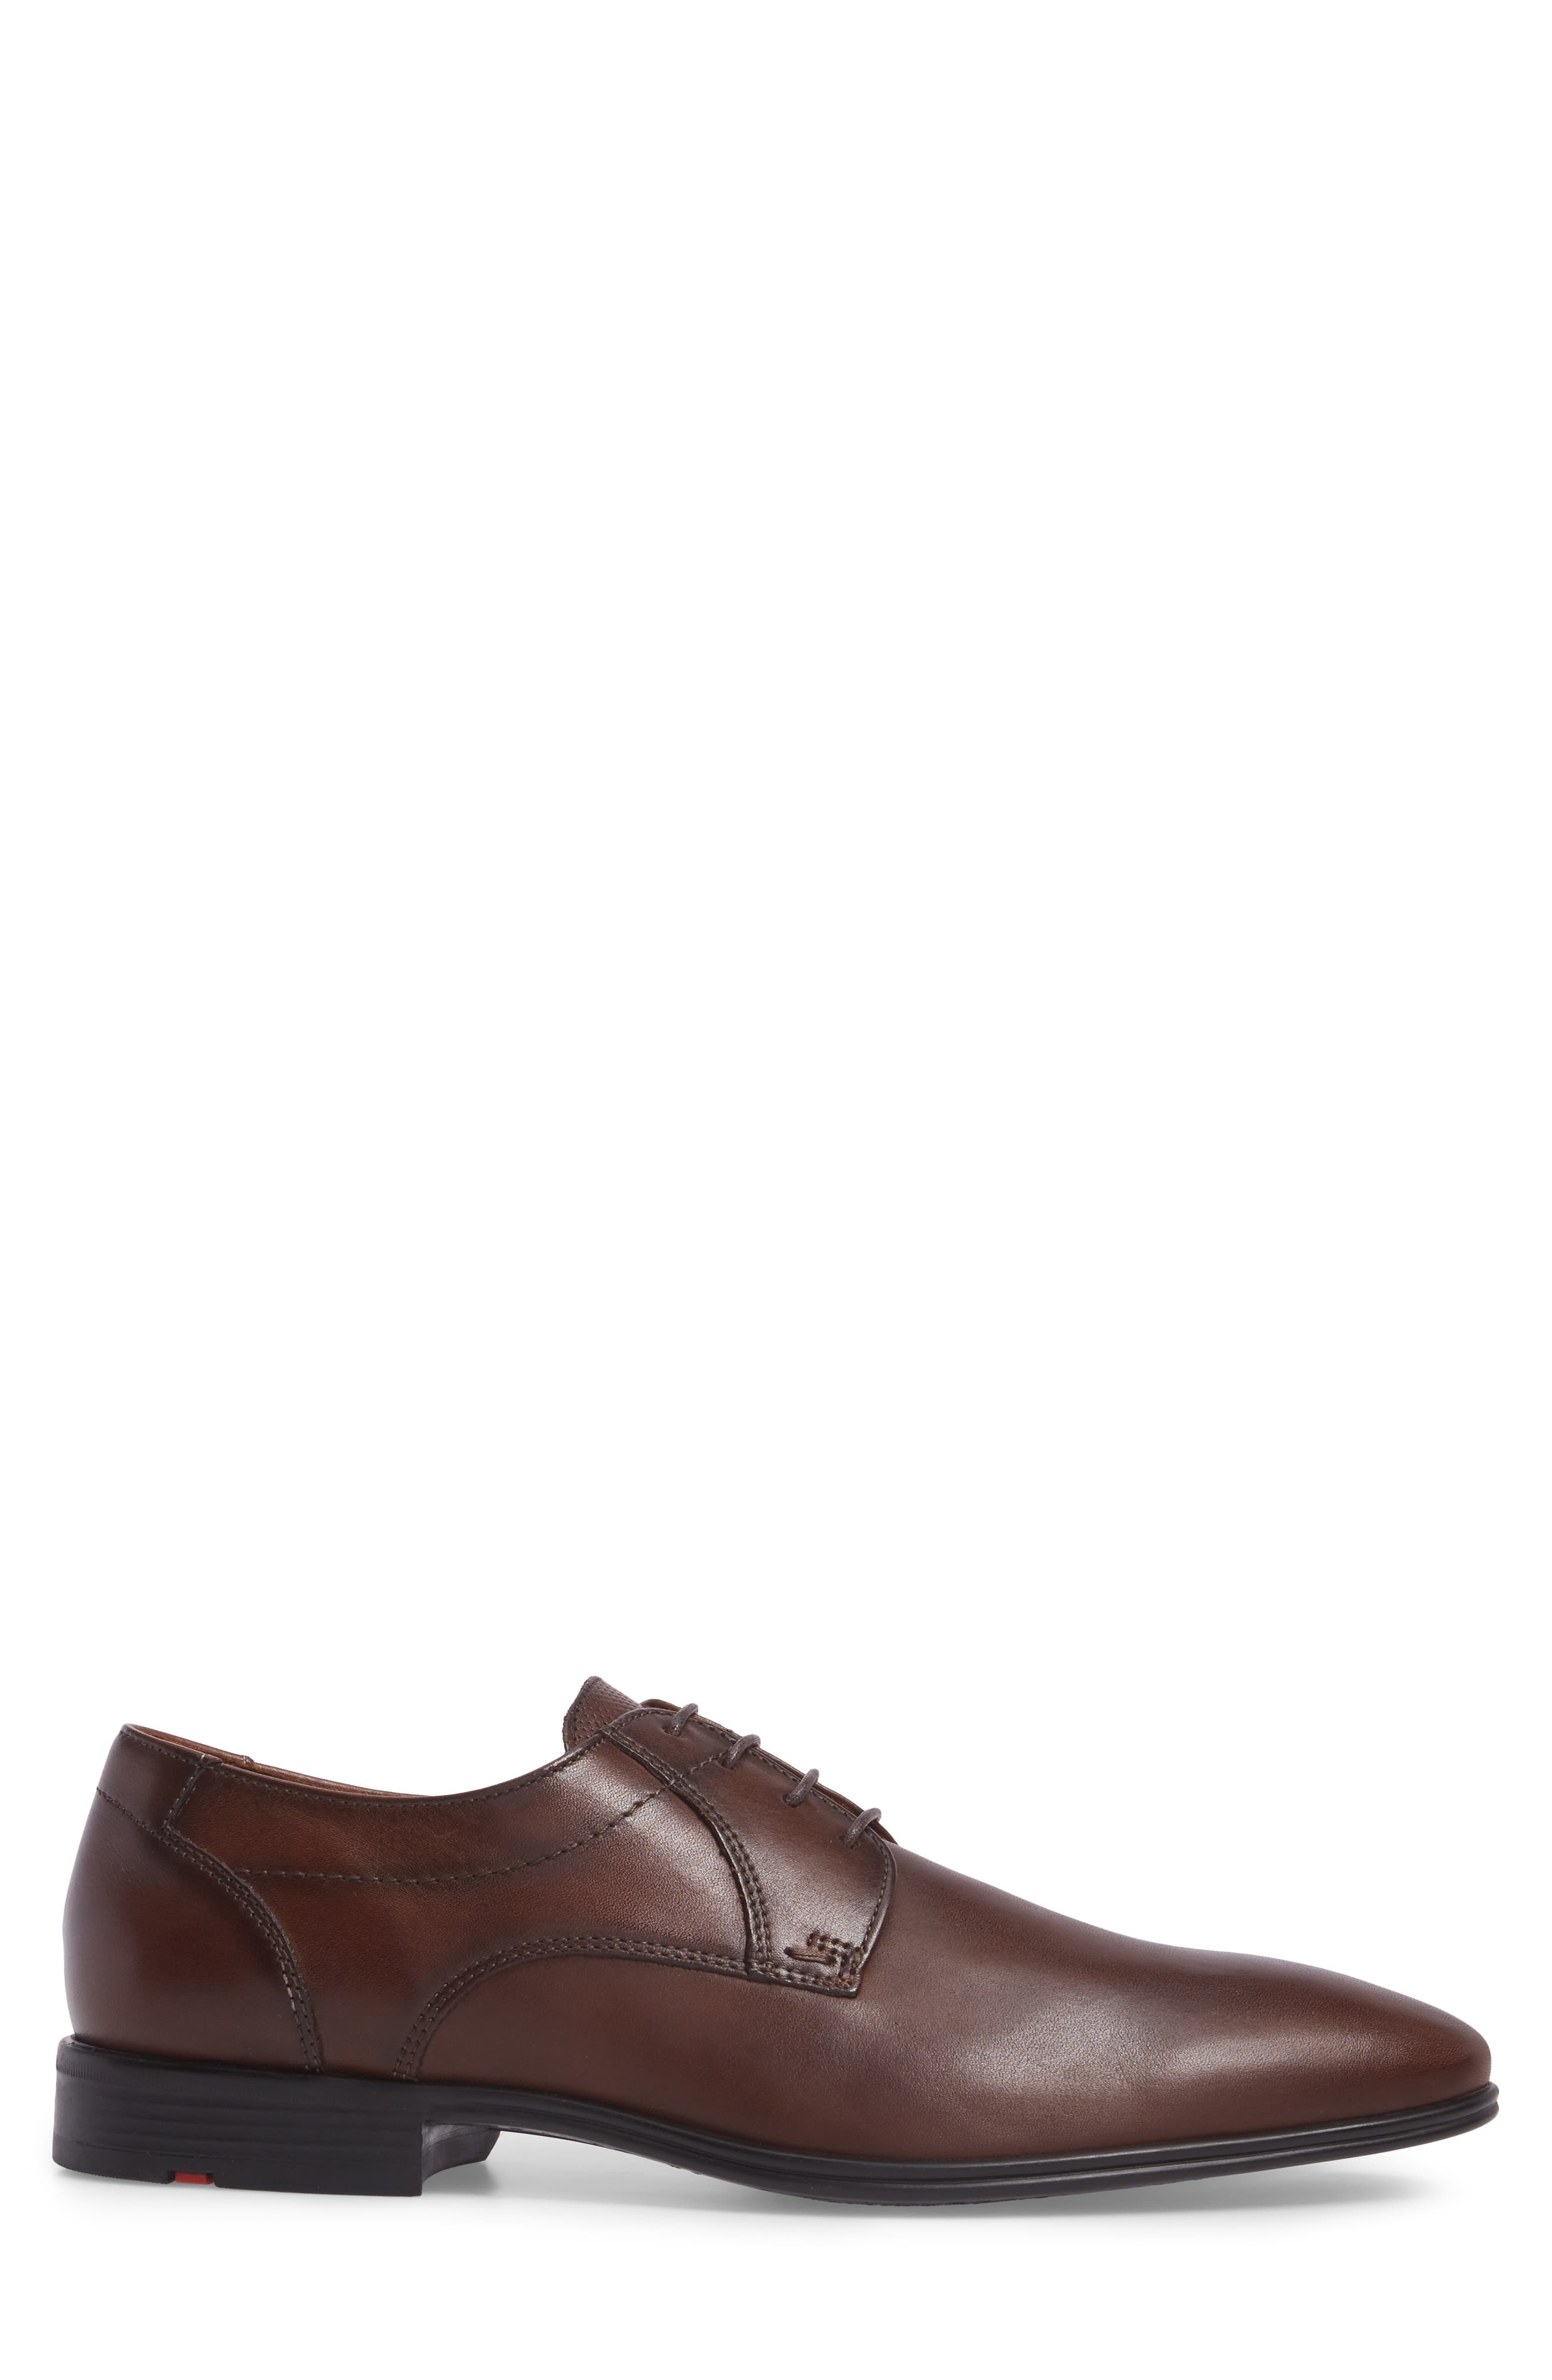 Osmond Plain Toe Derby,                             Alternate thumbnail 3, color,                             T.D.Moro Leather